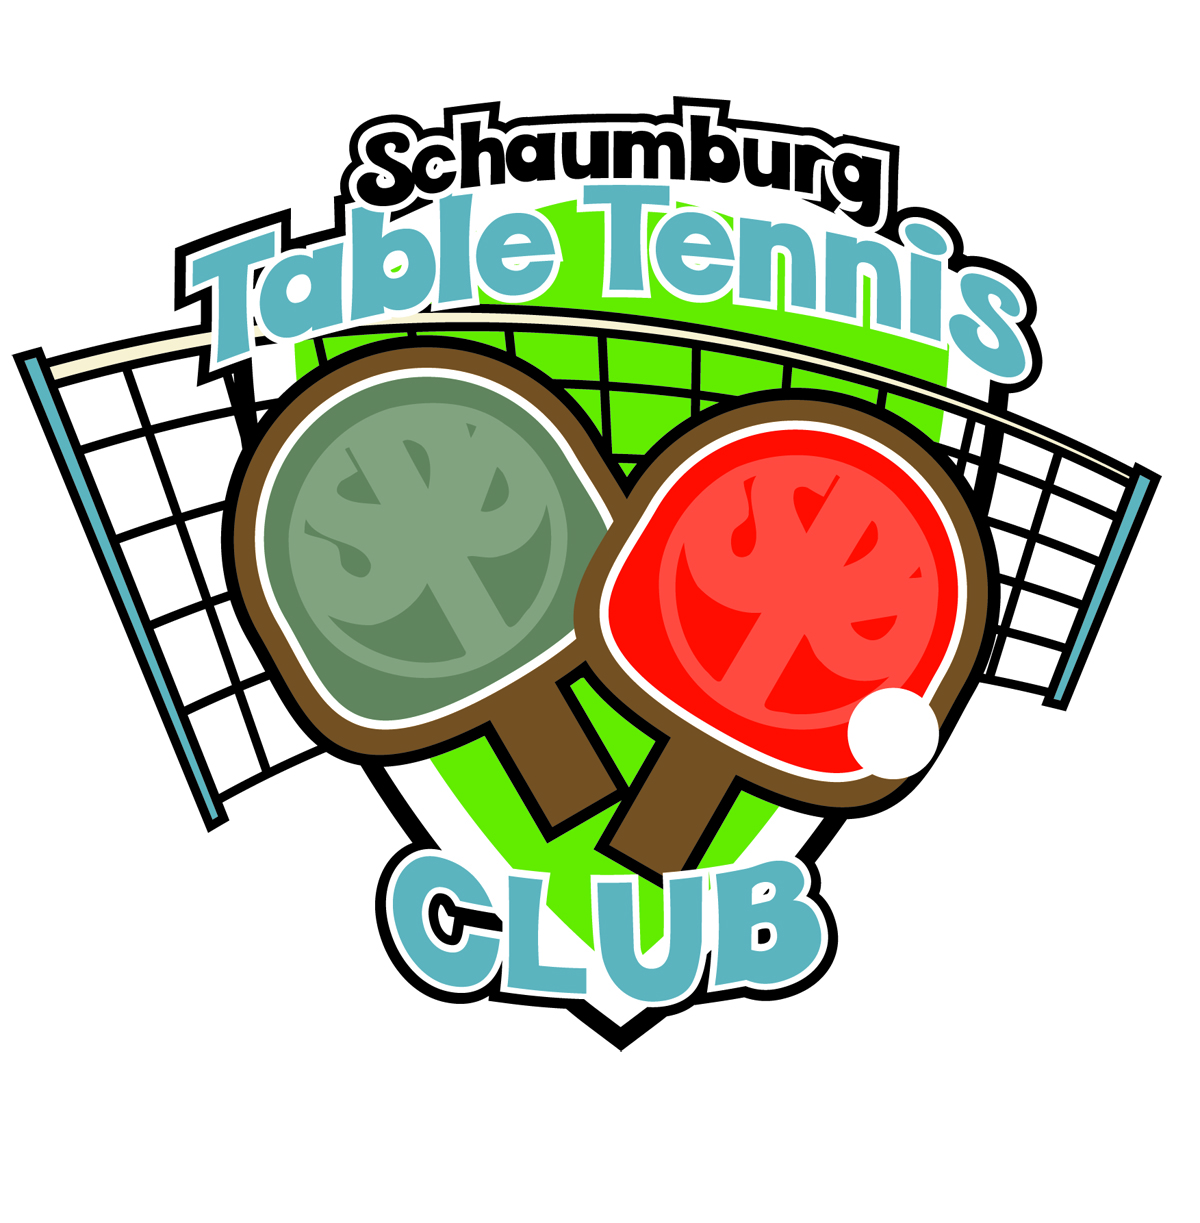 Schaumburg Table tennis club logo